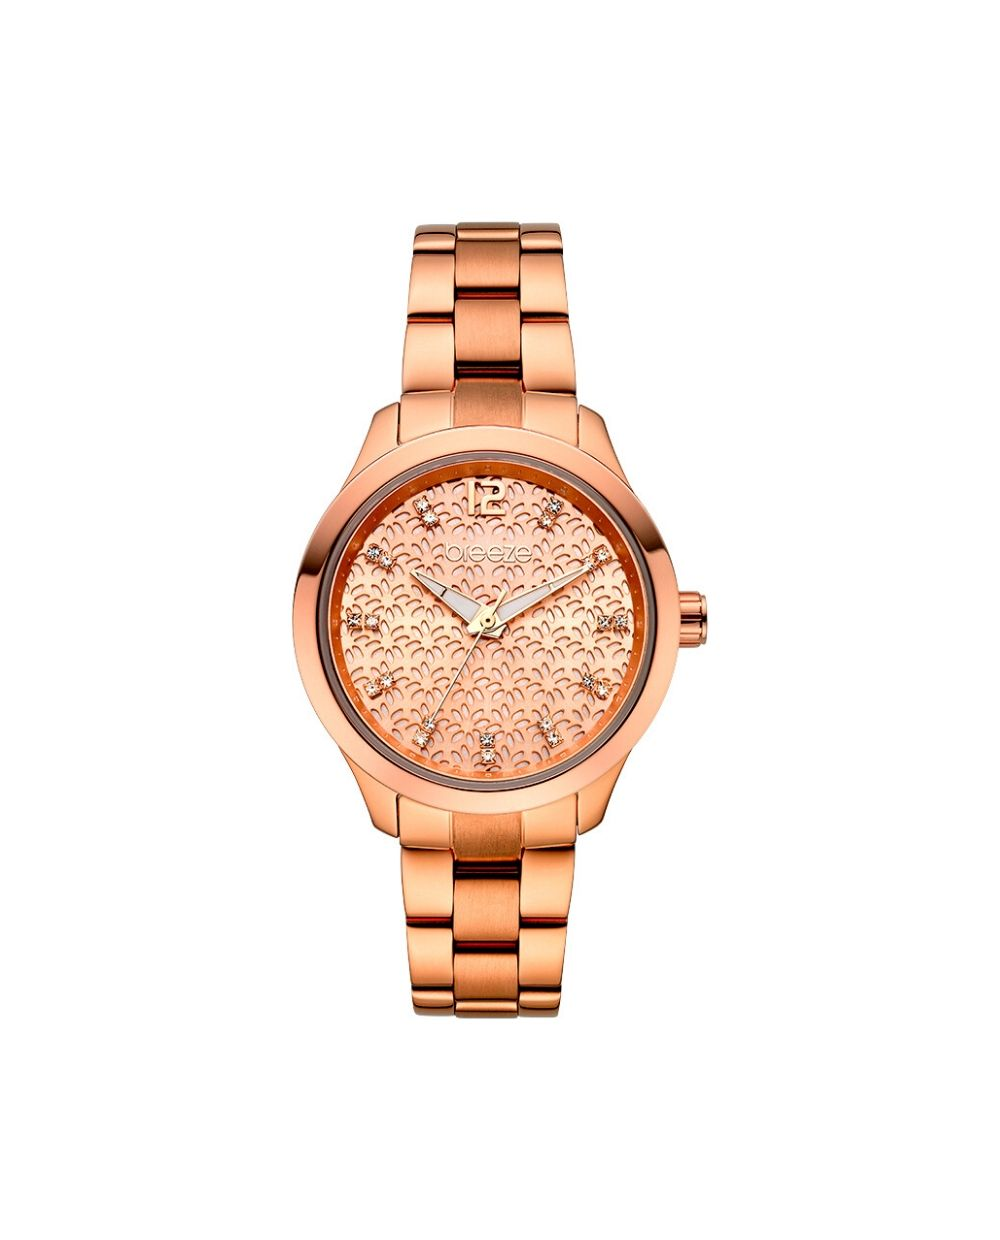 breeze womenswear in pink gold, with bracelet and pink gold dial with decorative details. Find it at Atofio in Korydallos.